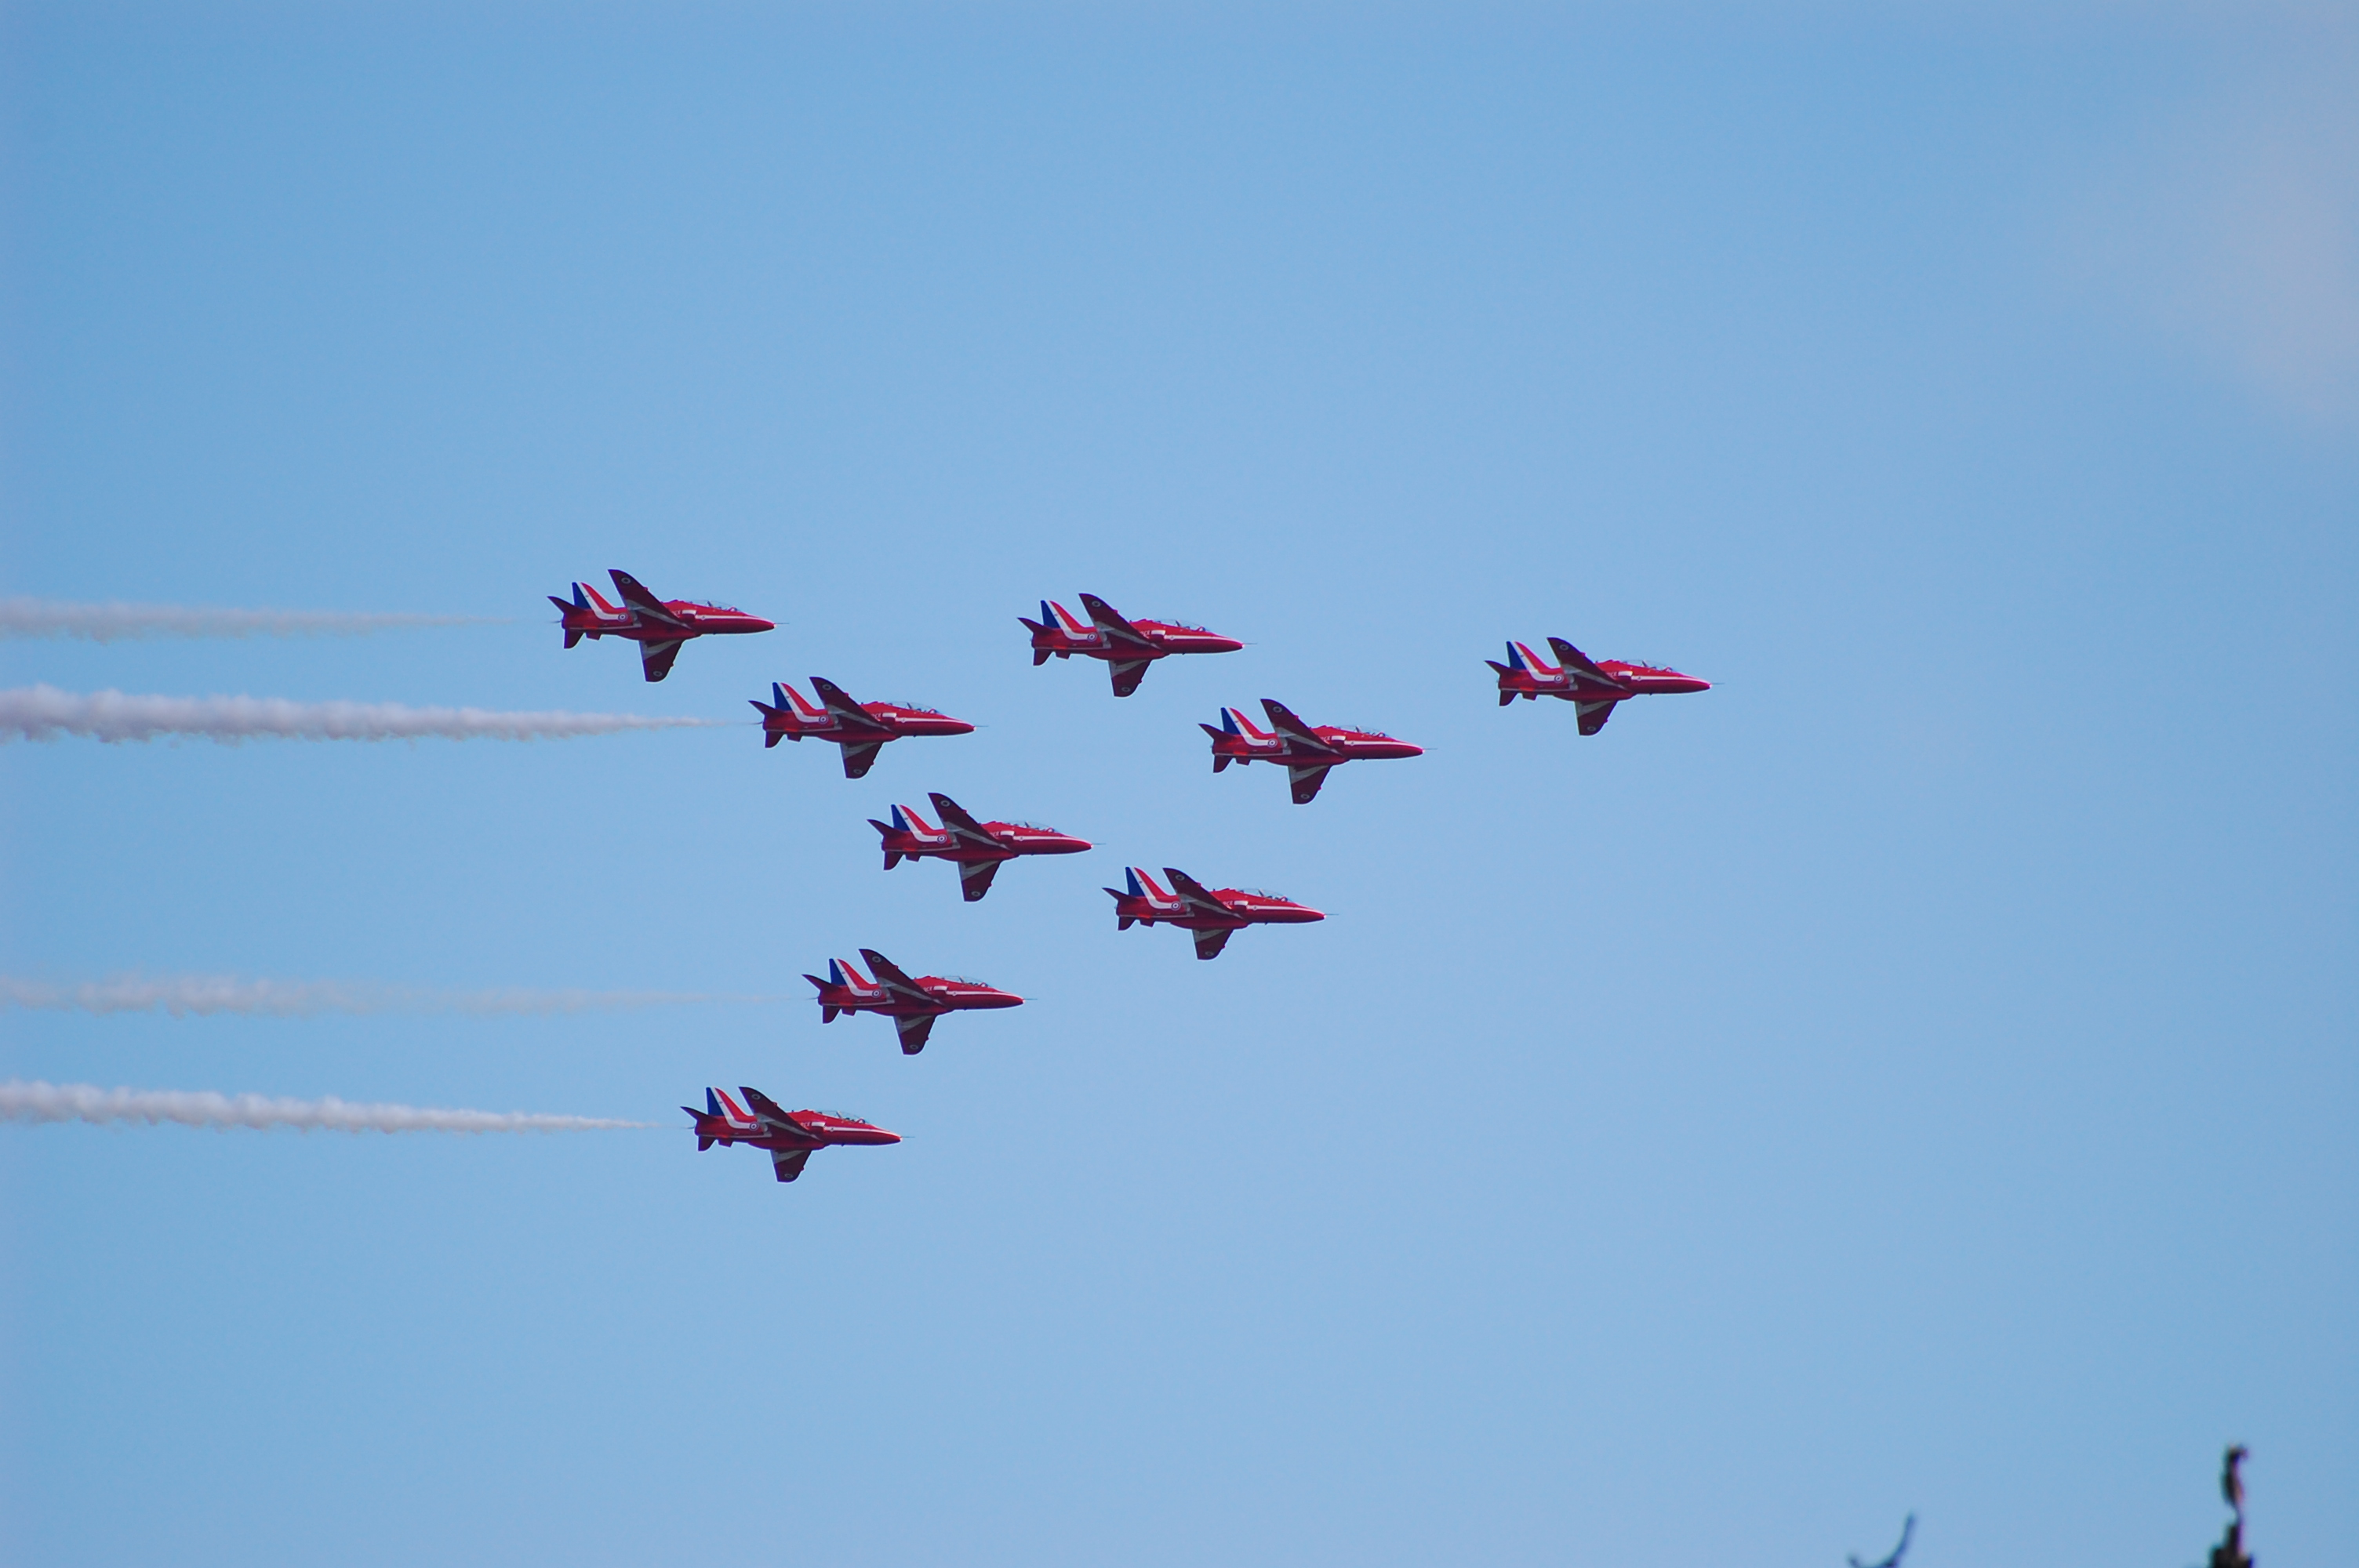 Vstc1 temps also Produktdesign likewise Faichun2006 moreover Red Arrows 7 also miwa Web. on media